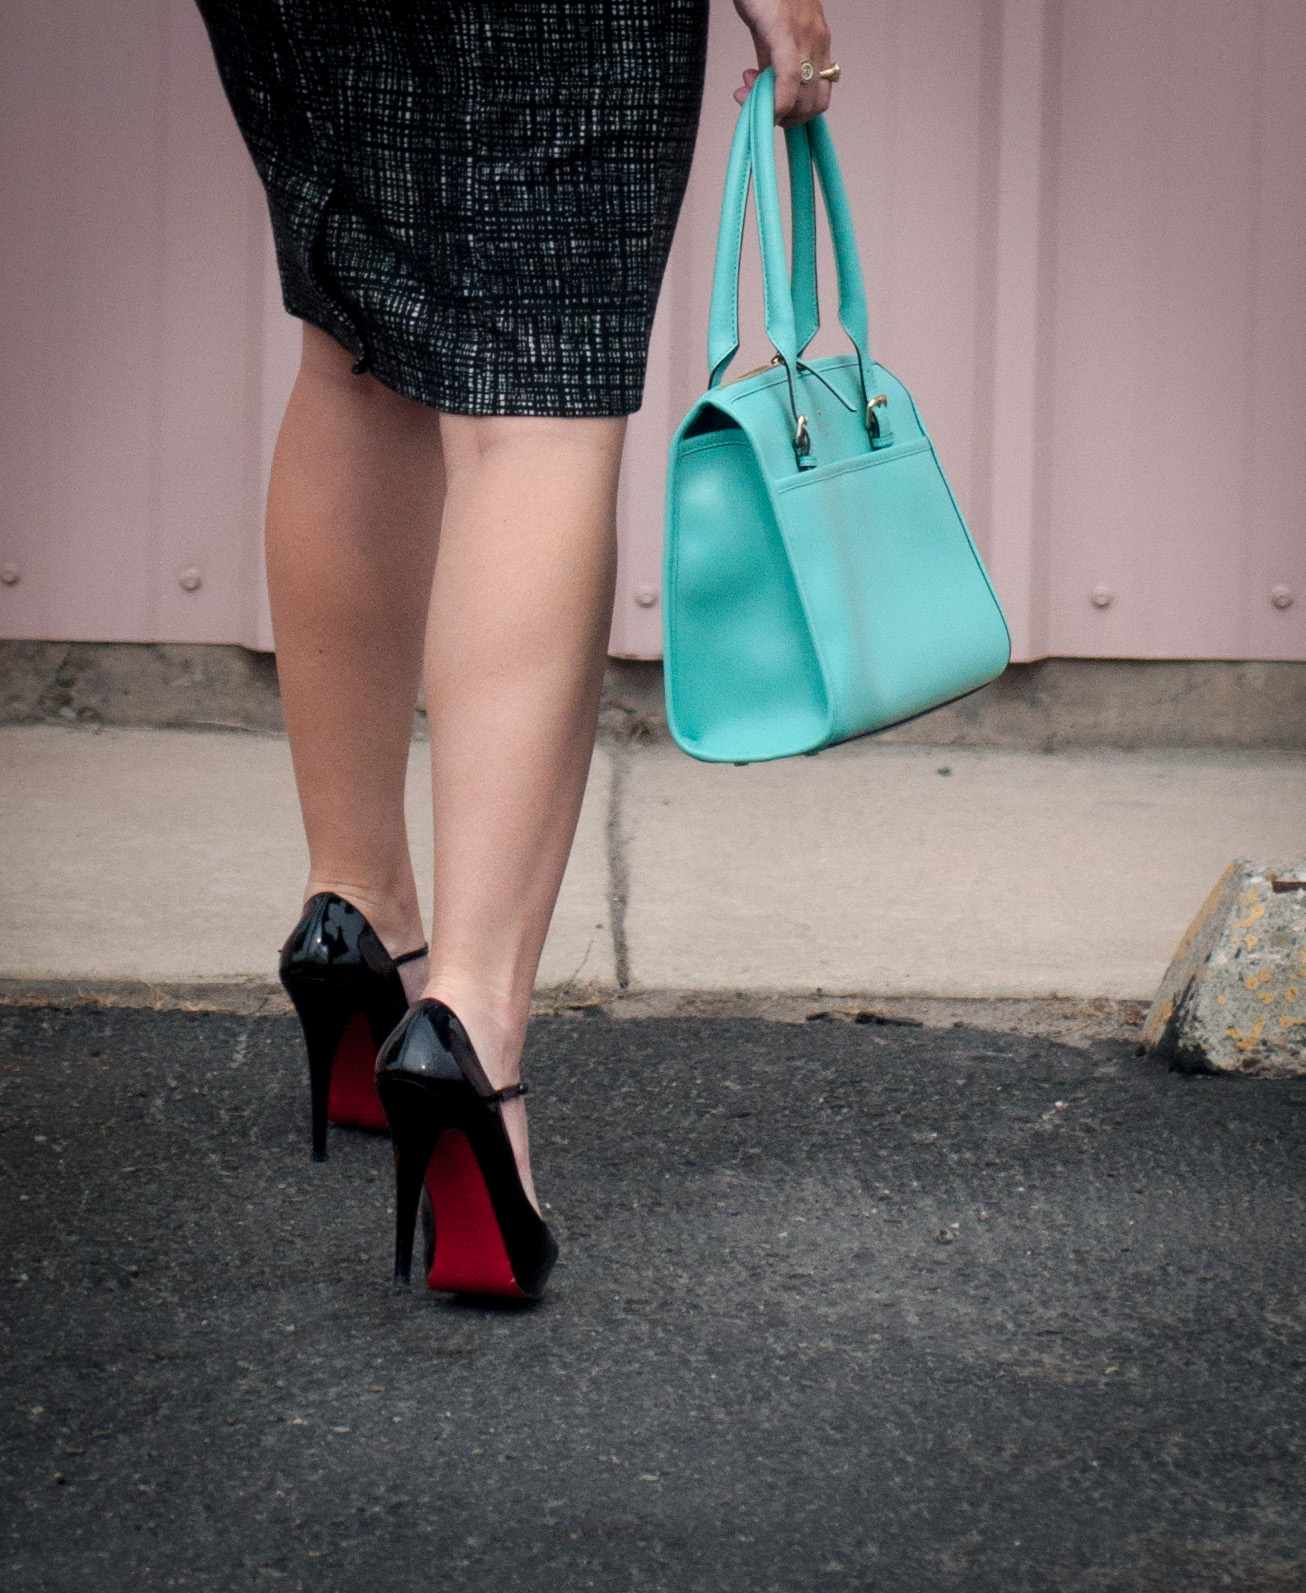 red soles, christian louboutin, kate spade, kate spade new york hand bag, black heels, ootd